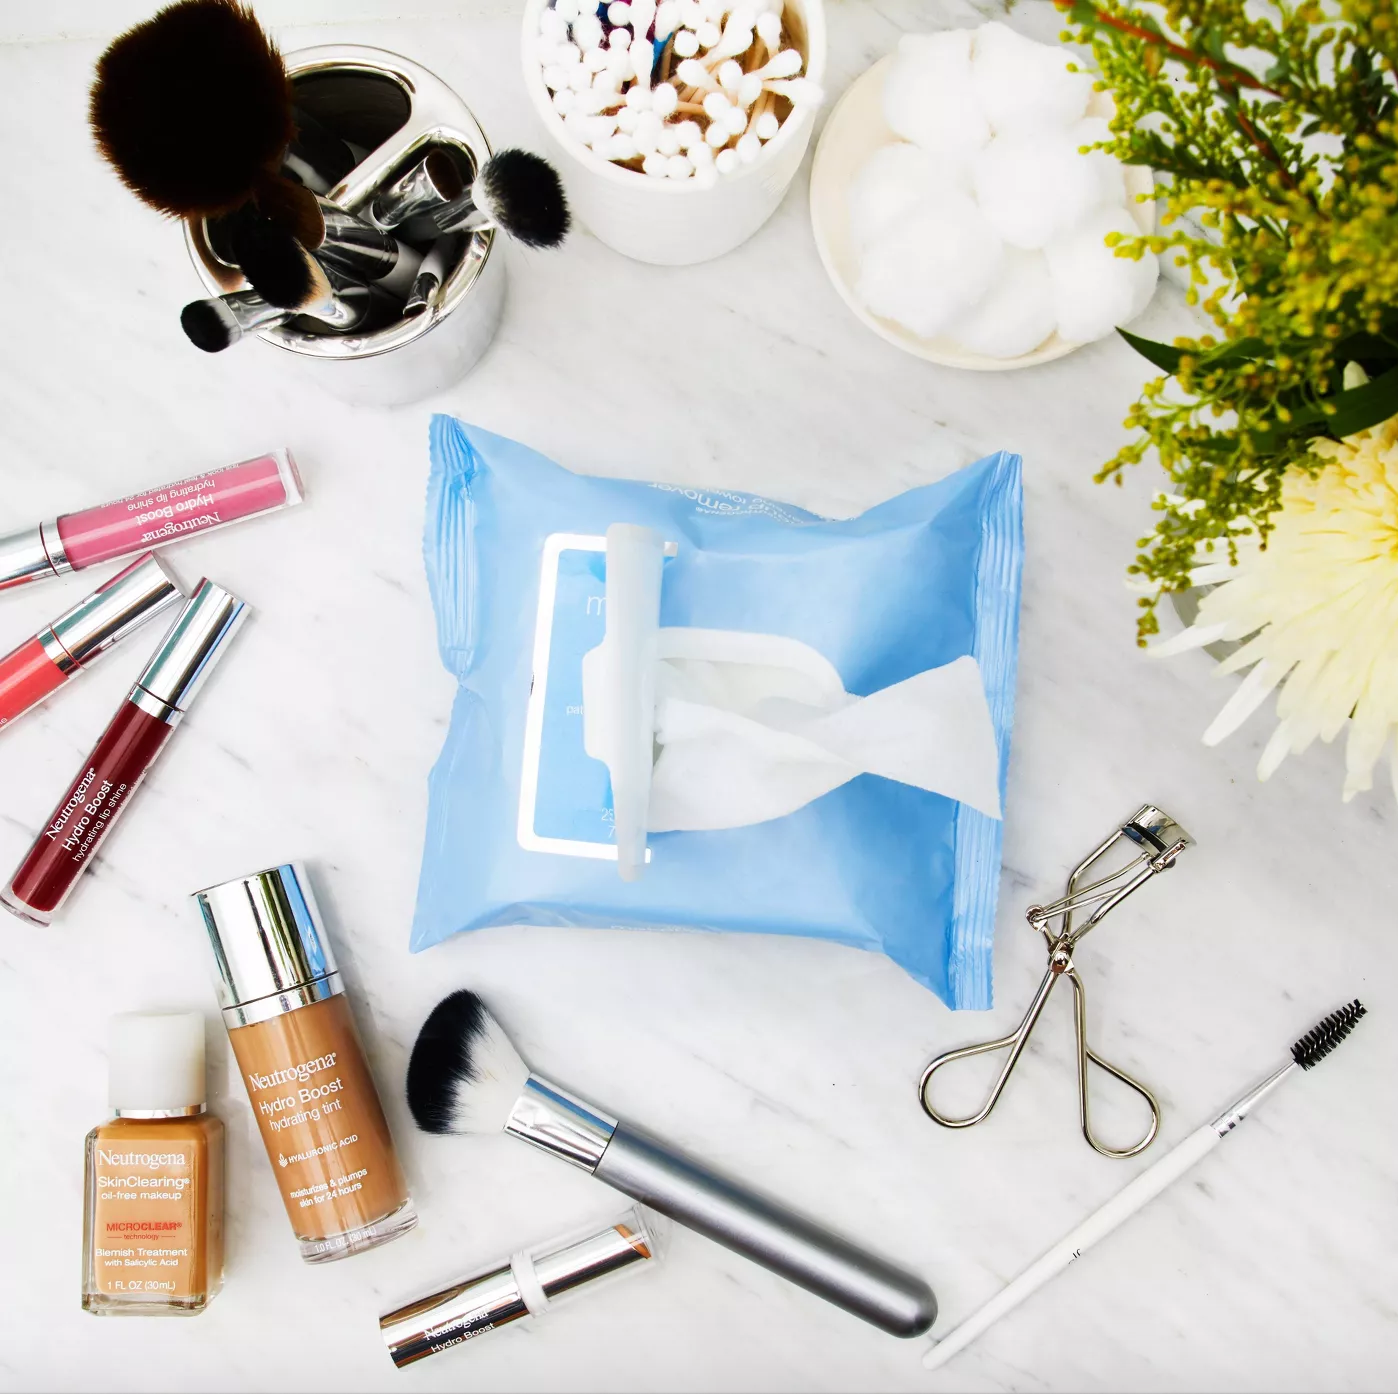 Neutrogena Makeup Remover Cleansing Wipes